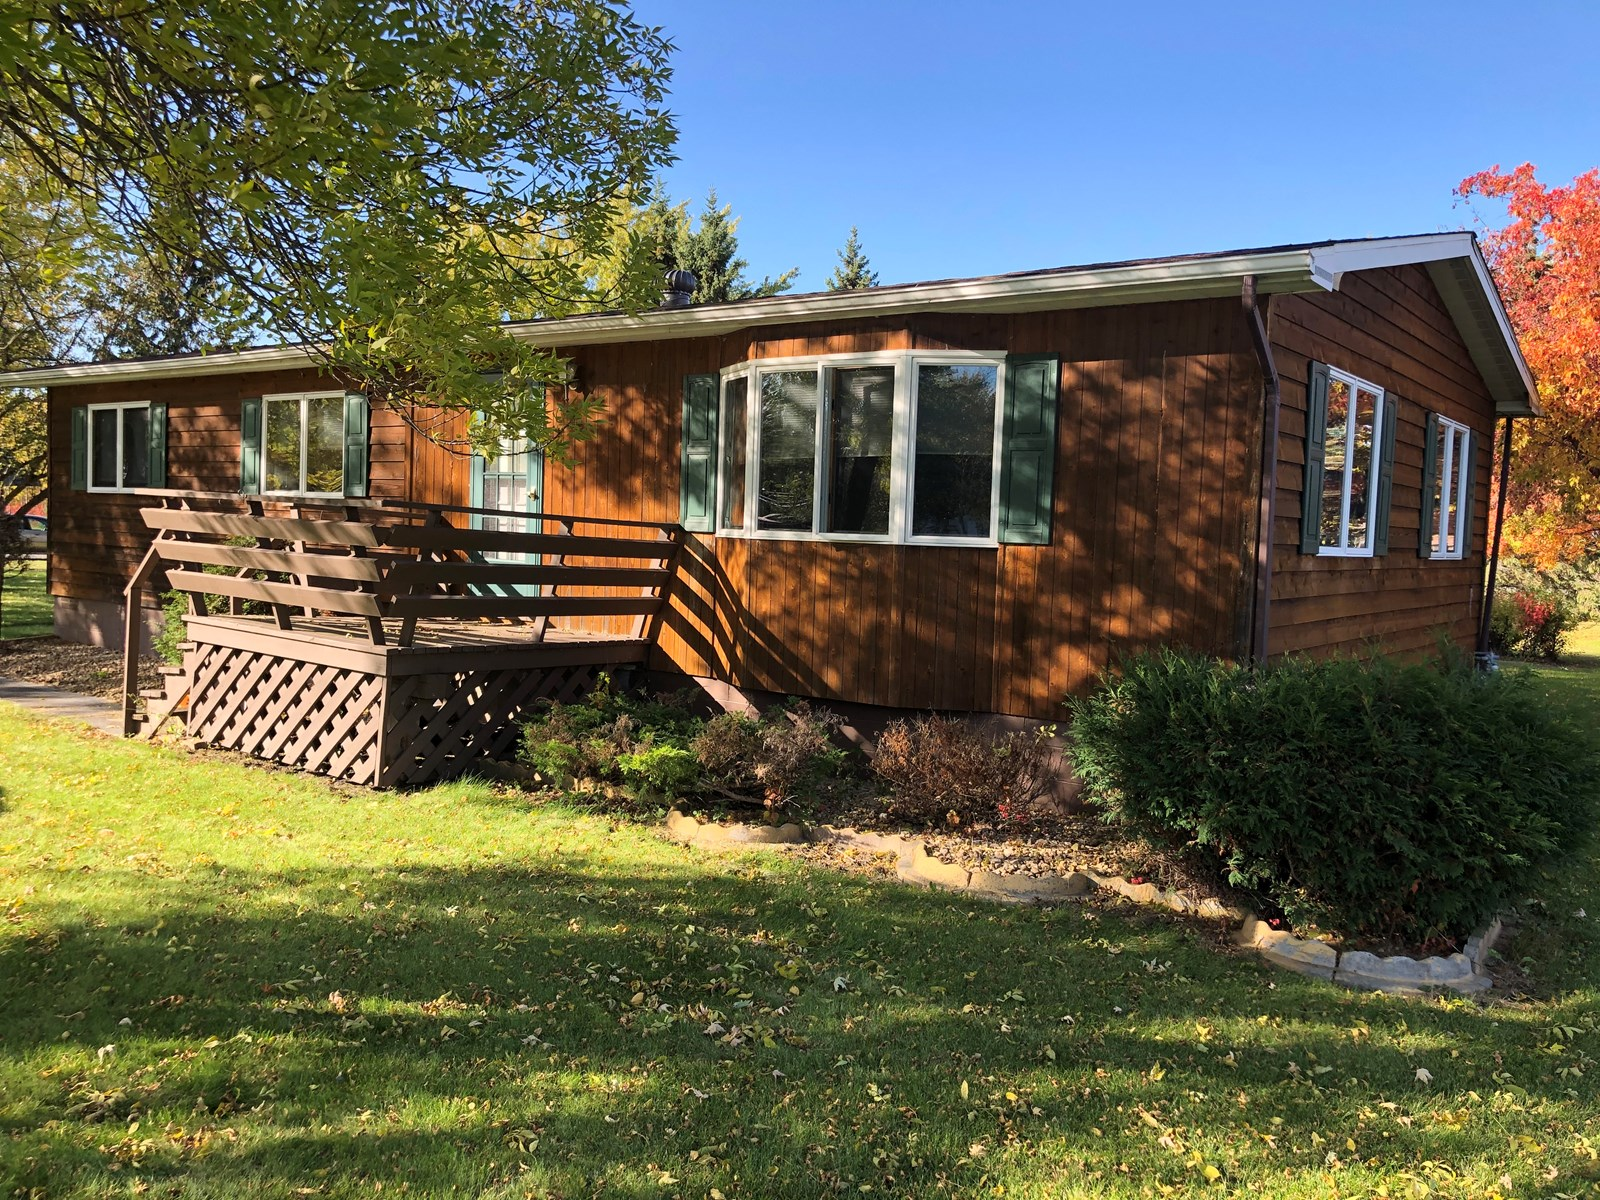 Residential property for sale in International Falls, MN